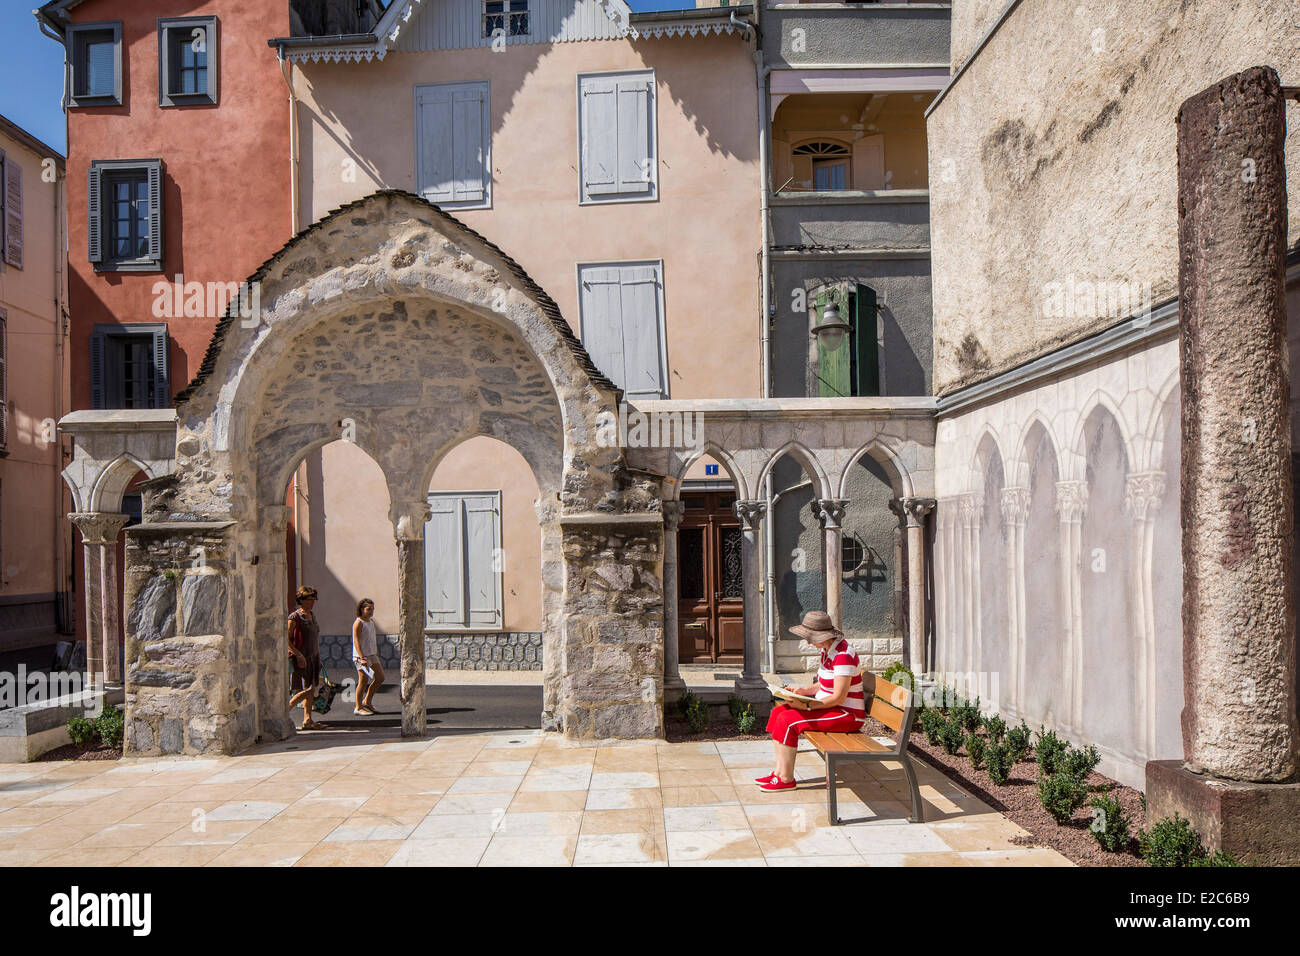 France, Hautes Pyrenees, Bagneres de Bigorre, cloister Saint Jean the former church of the Knight Templars - Stock Image